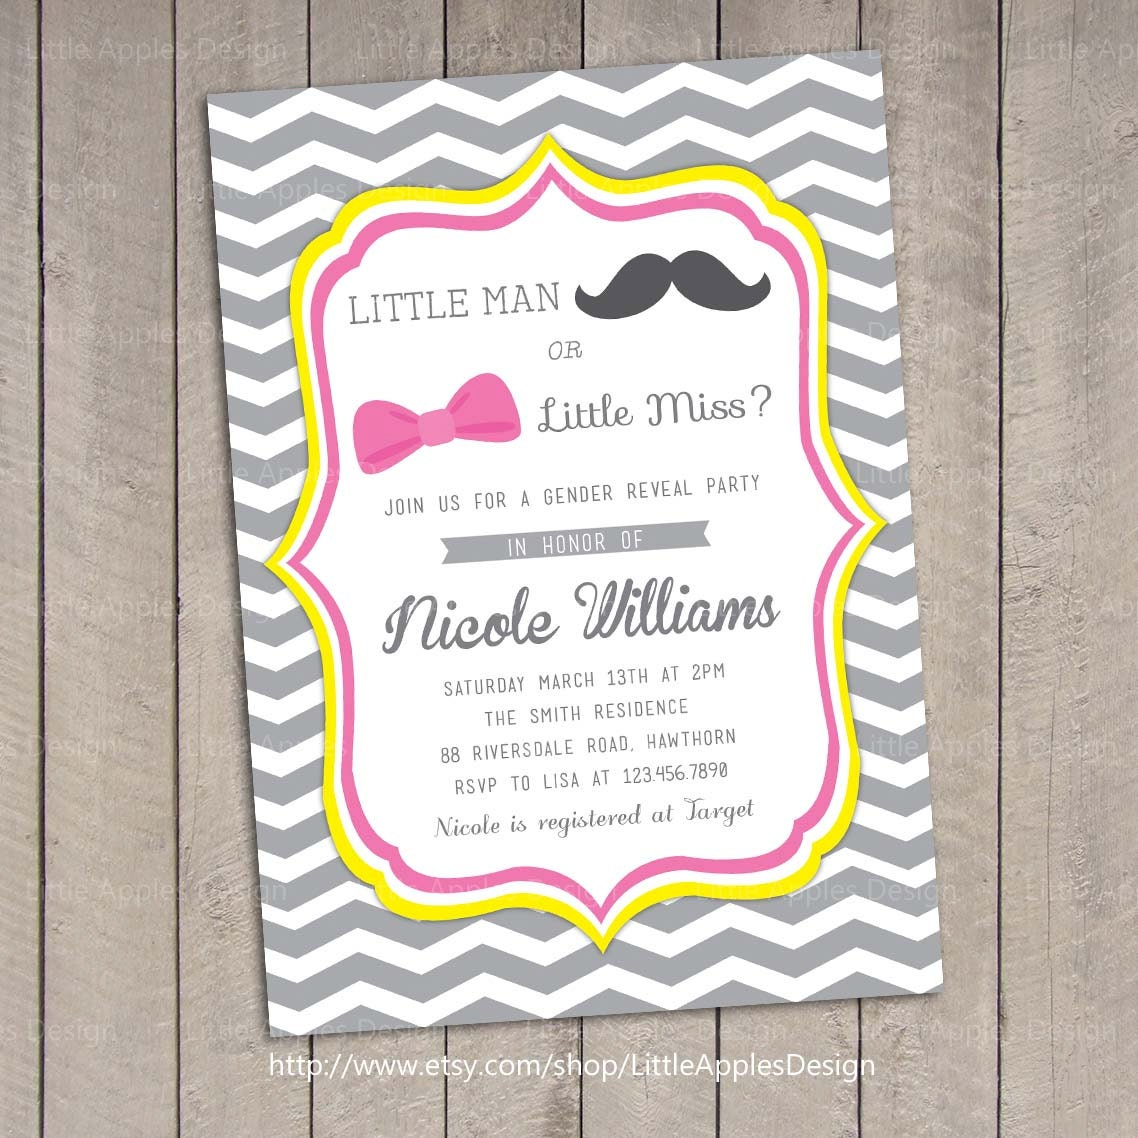 Gender Reveal Invitation Gender Reveal Party invitation – Gender Reveal Party Invite